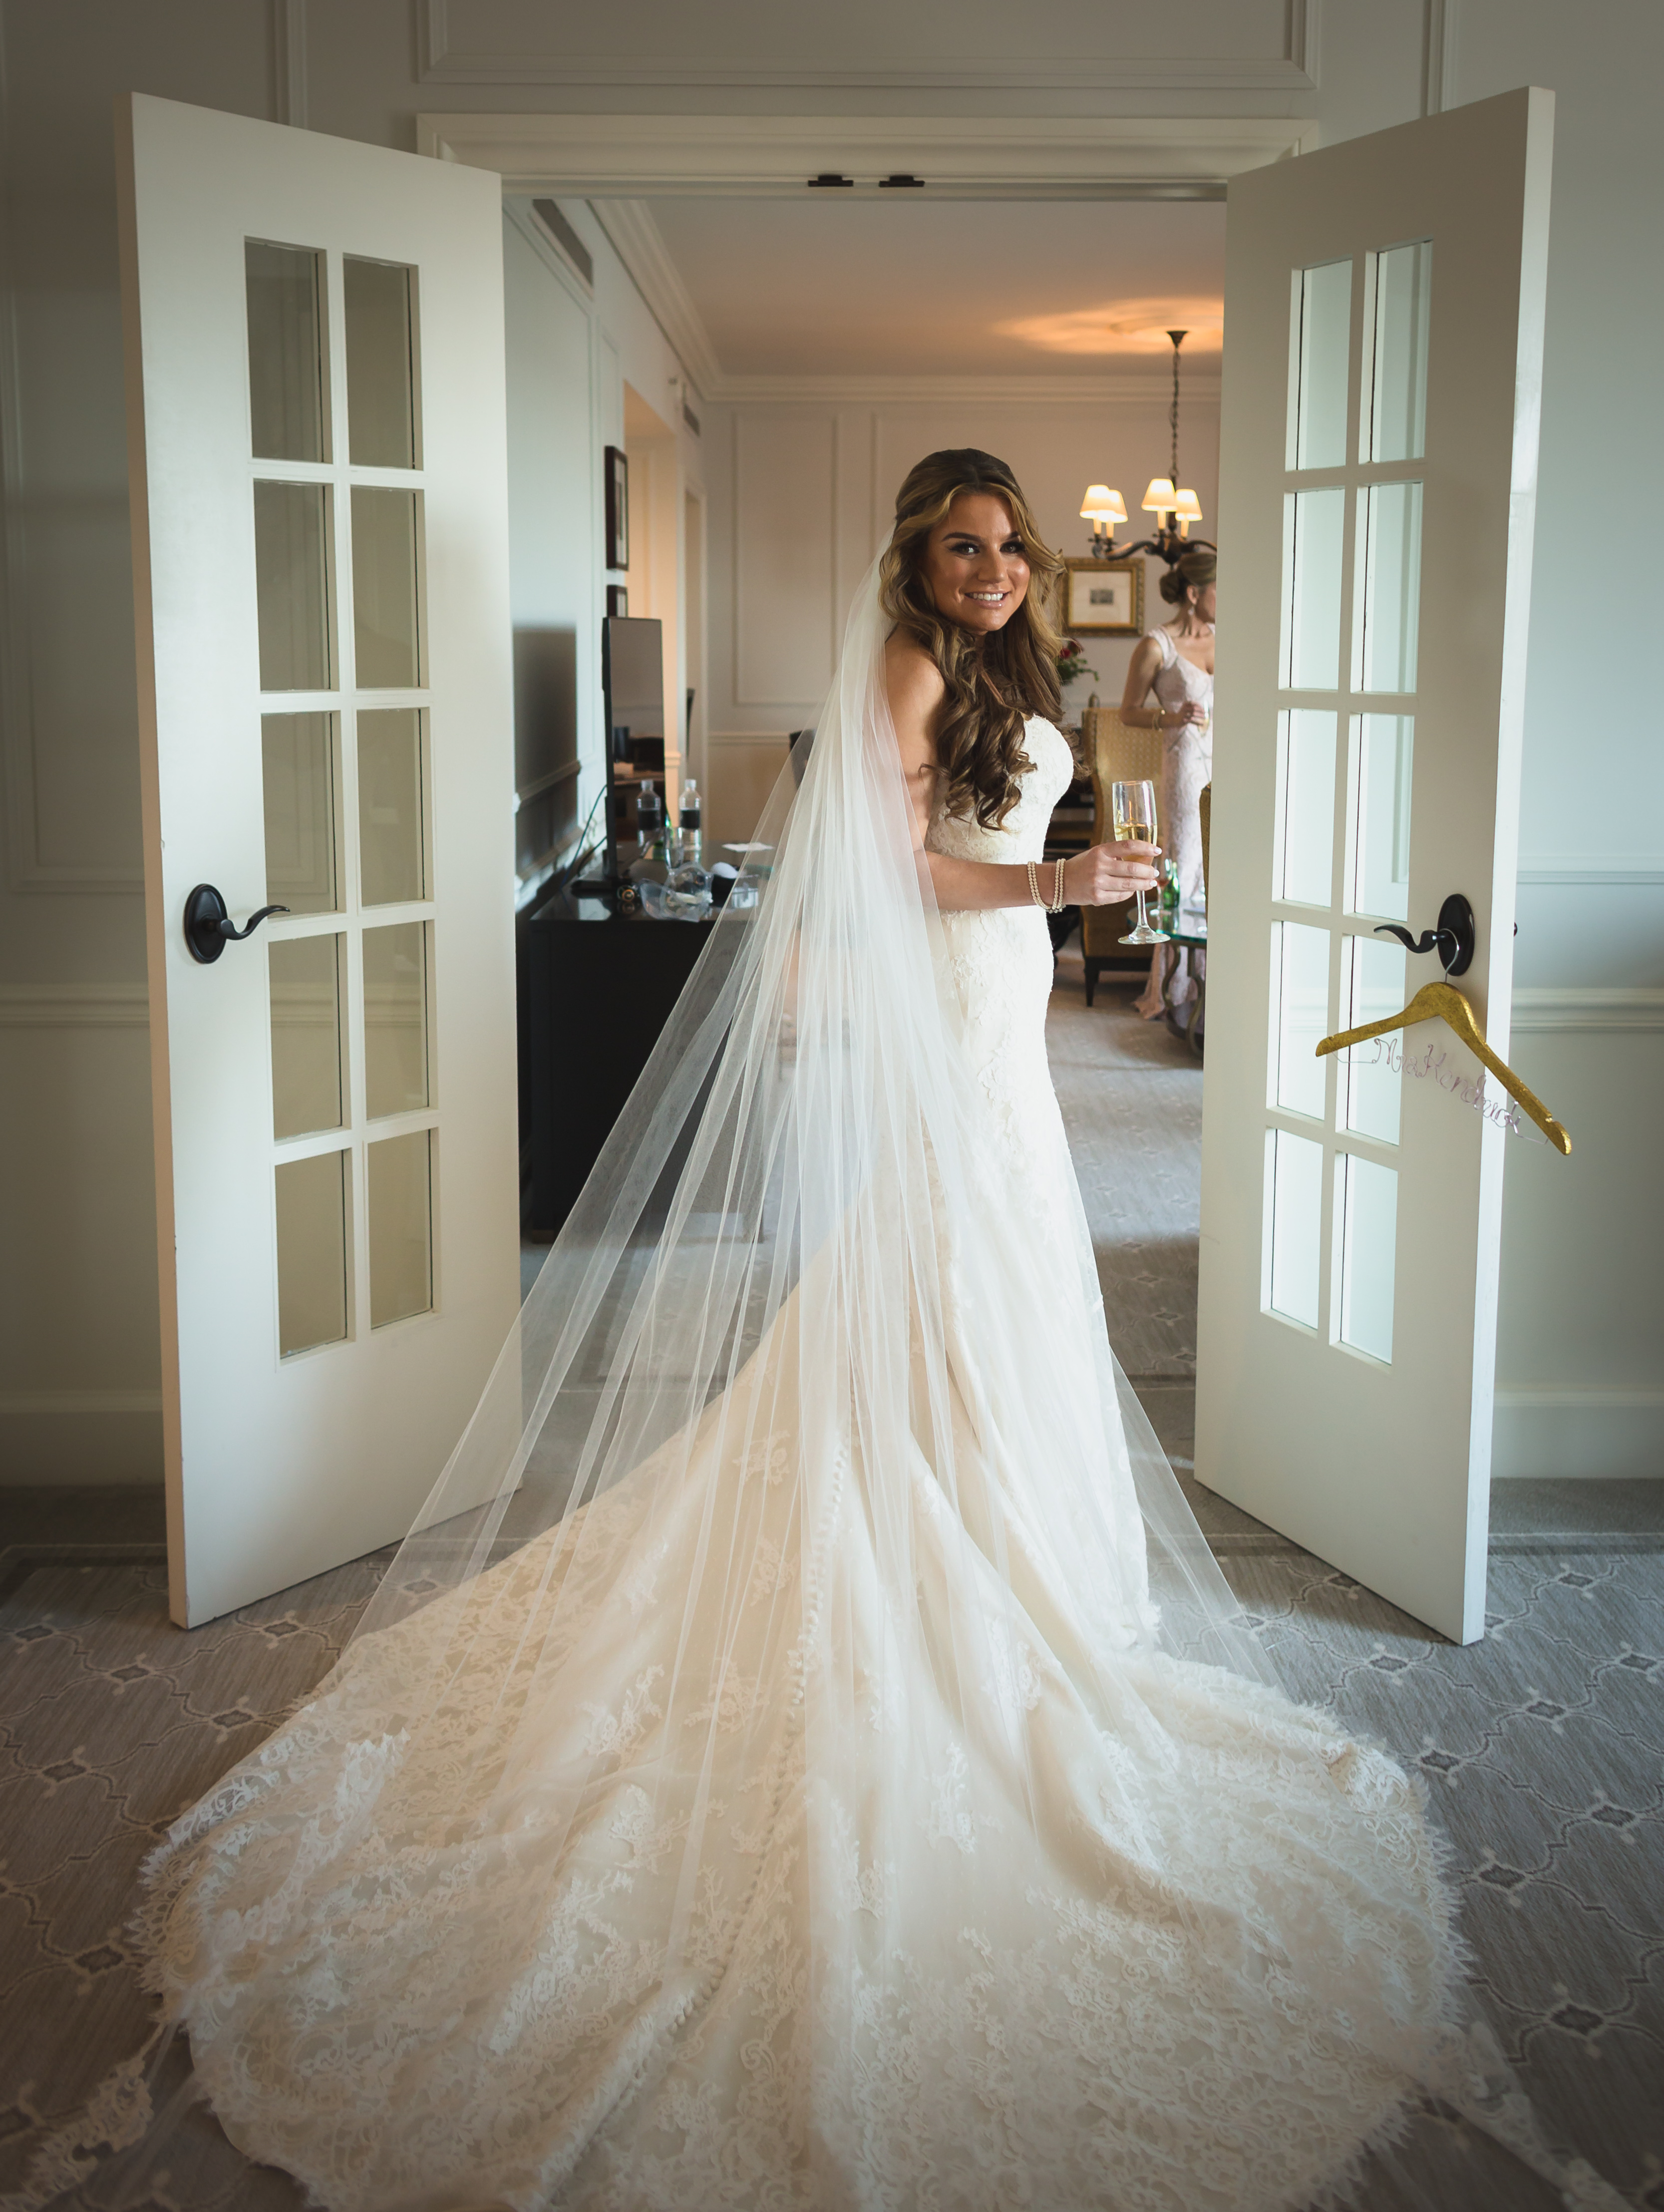 Wedding Photography Special - Couture Bridal Photography offers 2017-2018 wedding photography specials to save brides and grooms worldwide money on there Florida wedding photography and destination wedding photography needs.